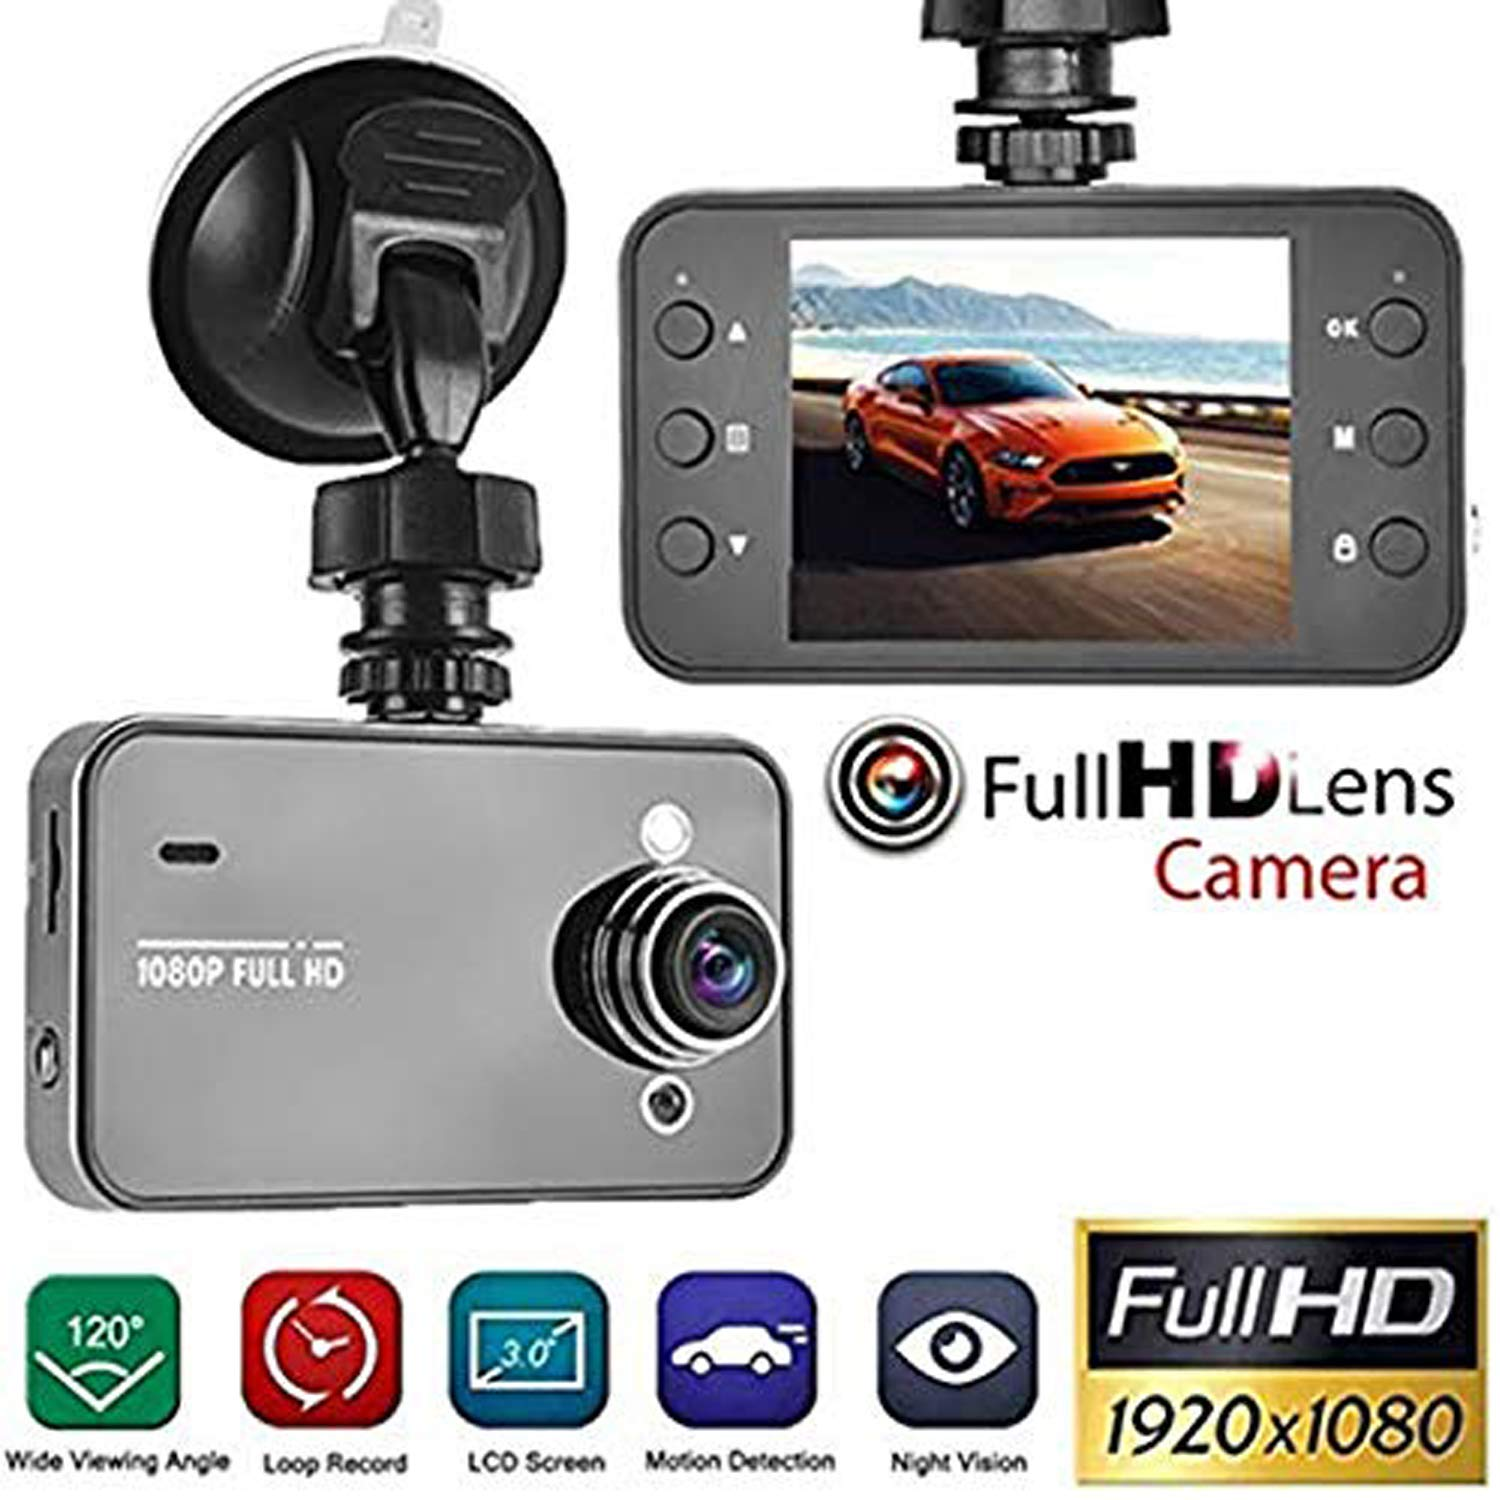 Dash Cam 1080P Full HD Car DVR Dashboard Camera, Driving Recorder with 2.2 Inch LCD Screen, K6000 Super Wide-Angle Night Vision,Photo, Video, Recording, Playback View, Loop Recording